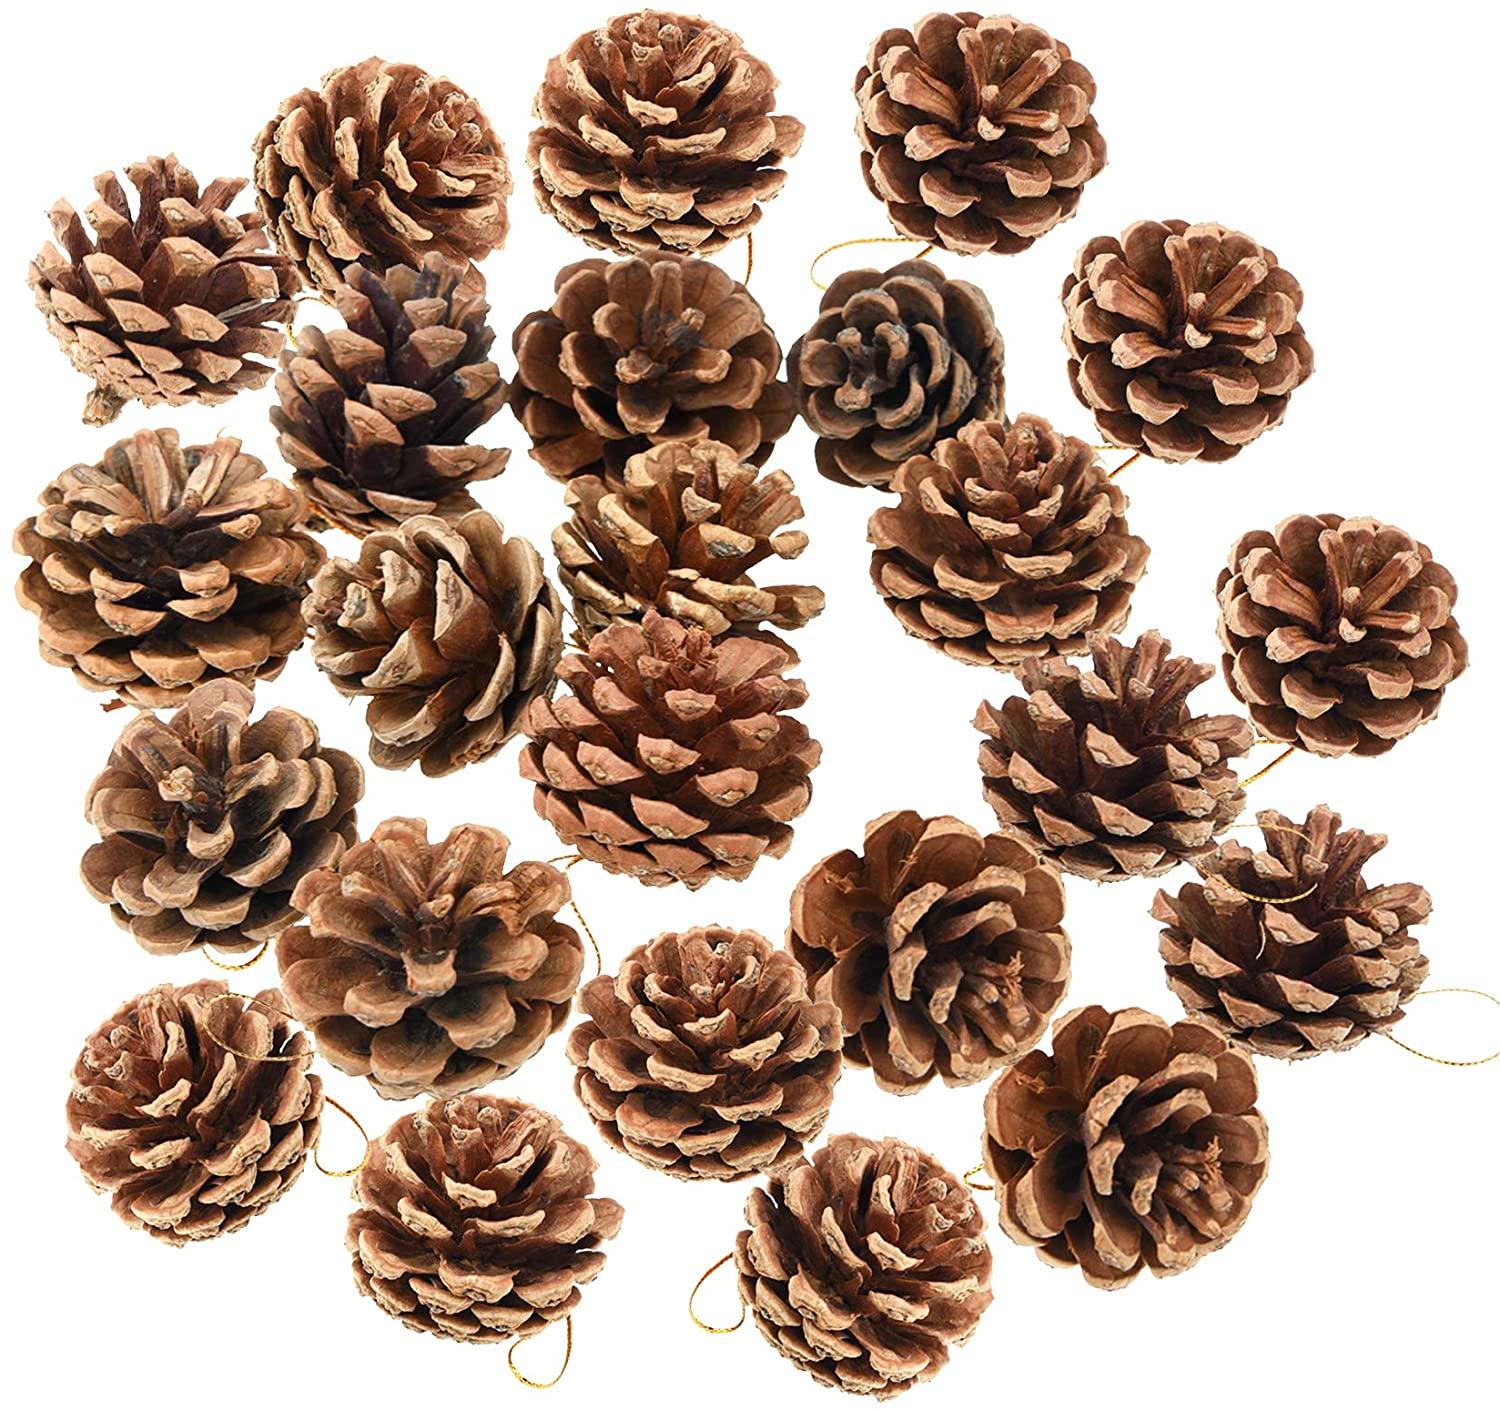 yeabwps 24 Pieces Christmas Natural Pine Cones, Rustic Pinecones Bulk Ornaments with Rope for Home Accent Decor, Fall Thanksgiving Tree Decoration Harvest Autumn Party Craft Accessory Decorations